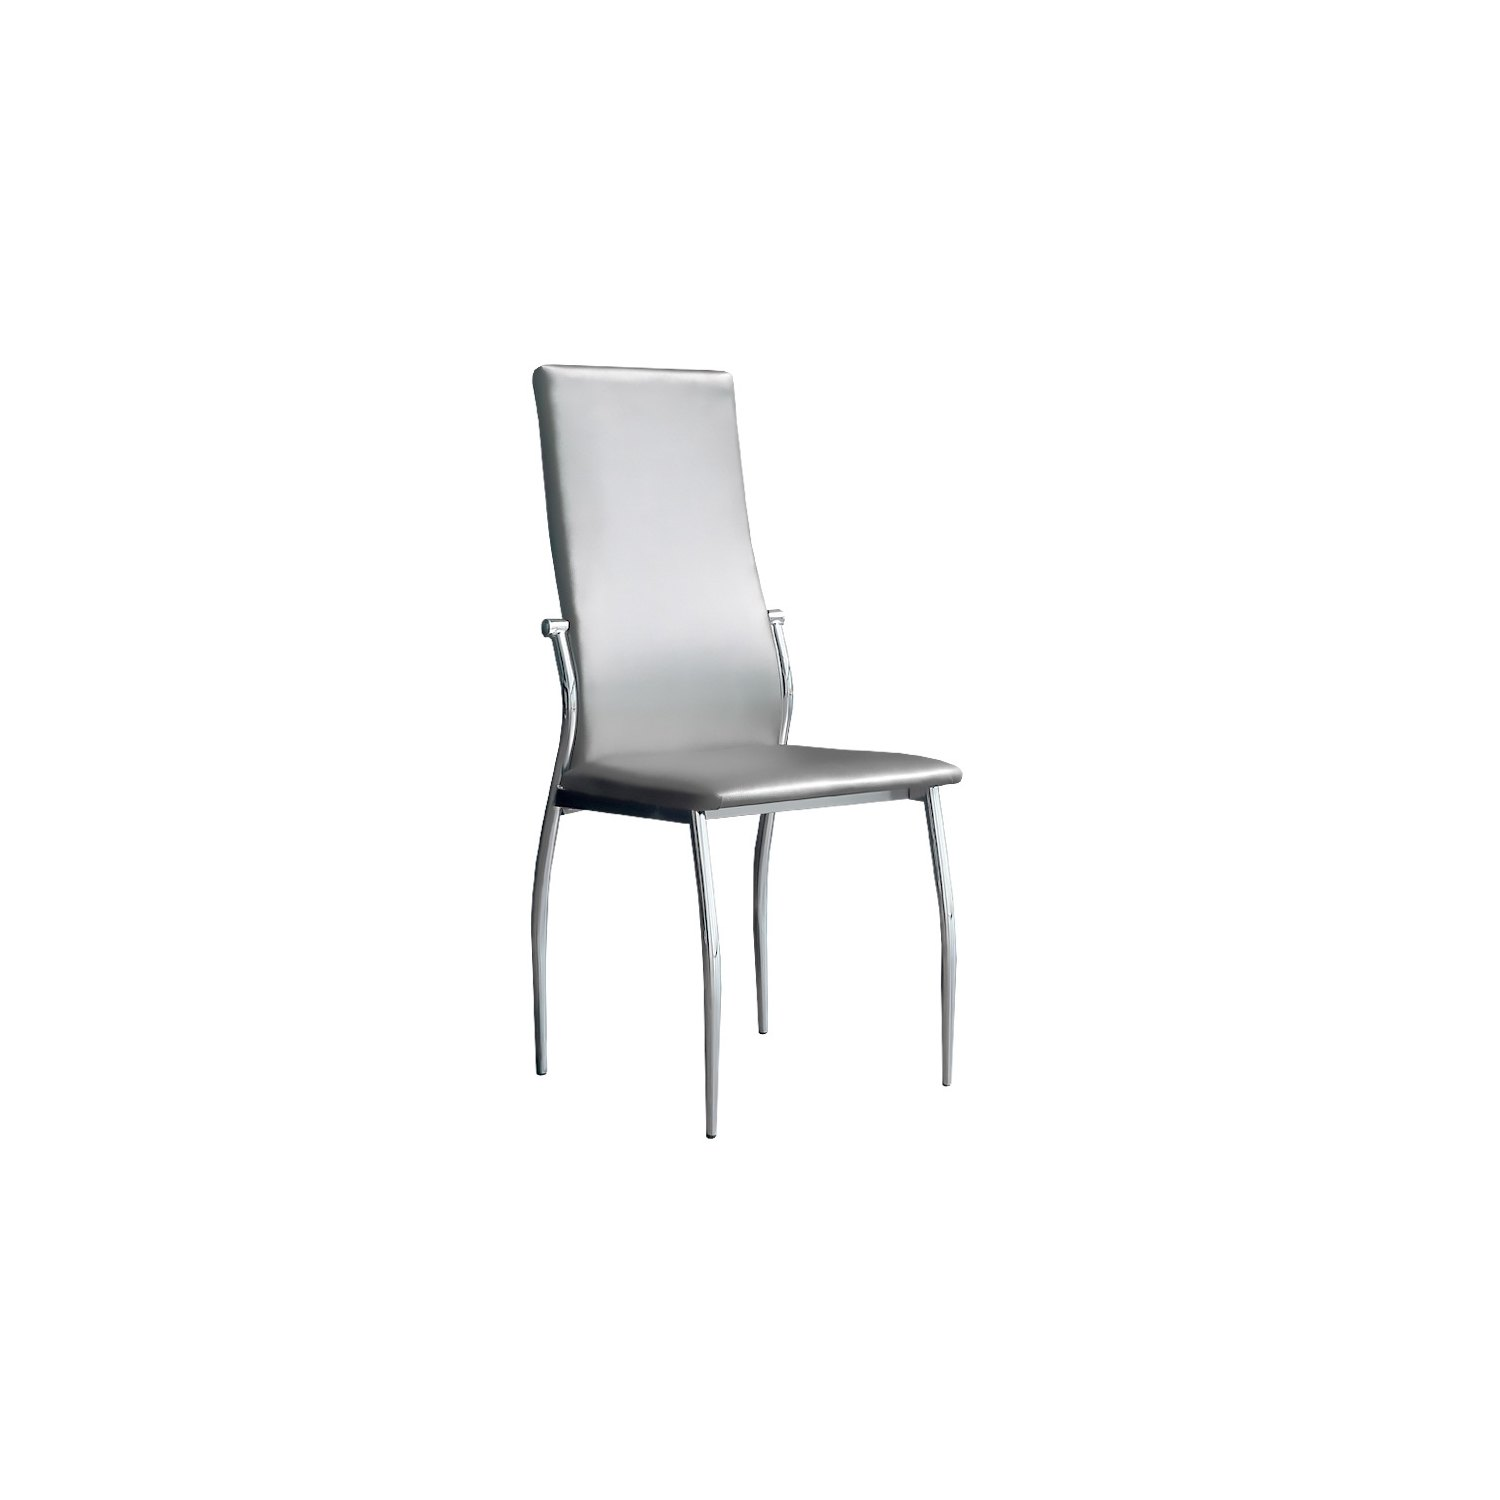 Silla tapizada boston de dise o en color plata for Sillas economicas para comedor